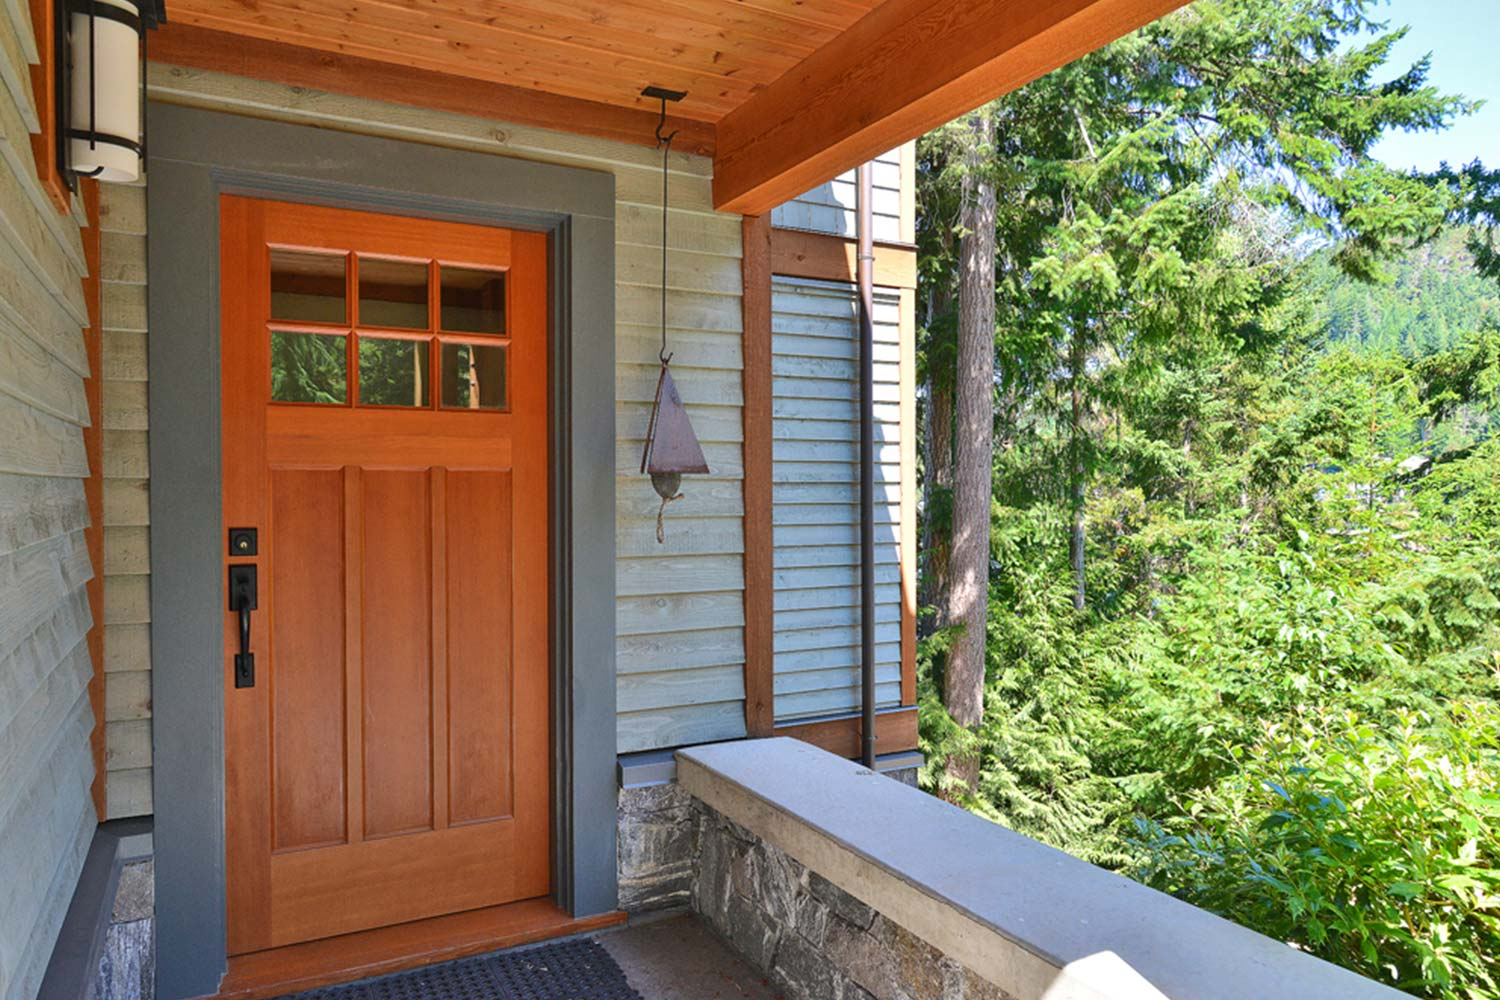 The front door of John Henry's luxury home rental, House 65, with a pine forest in the background.